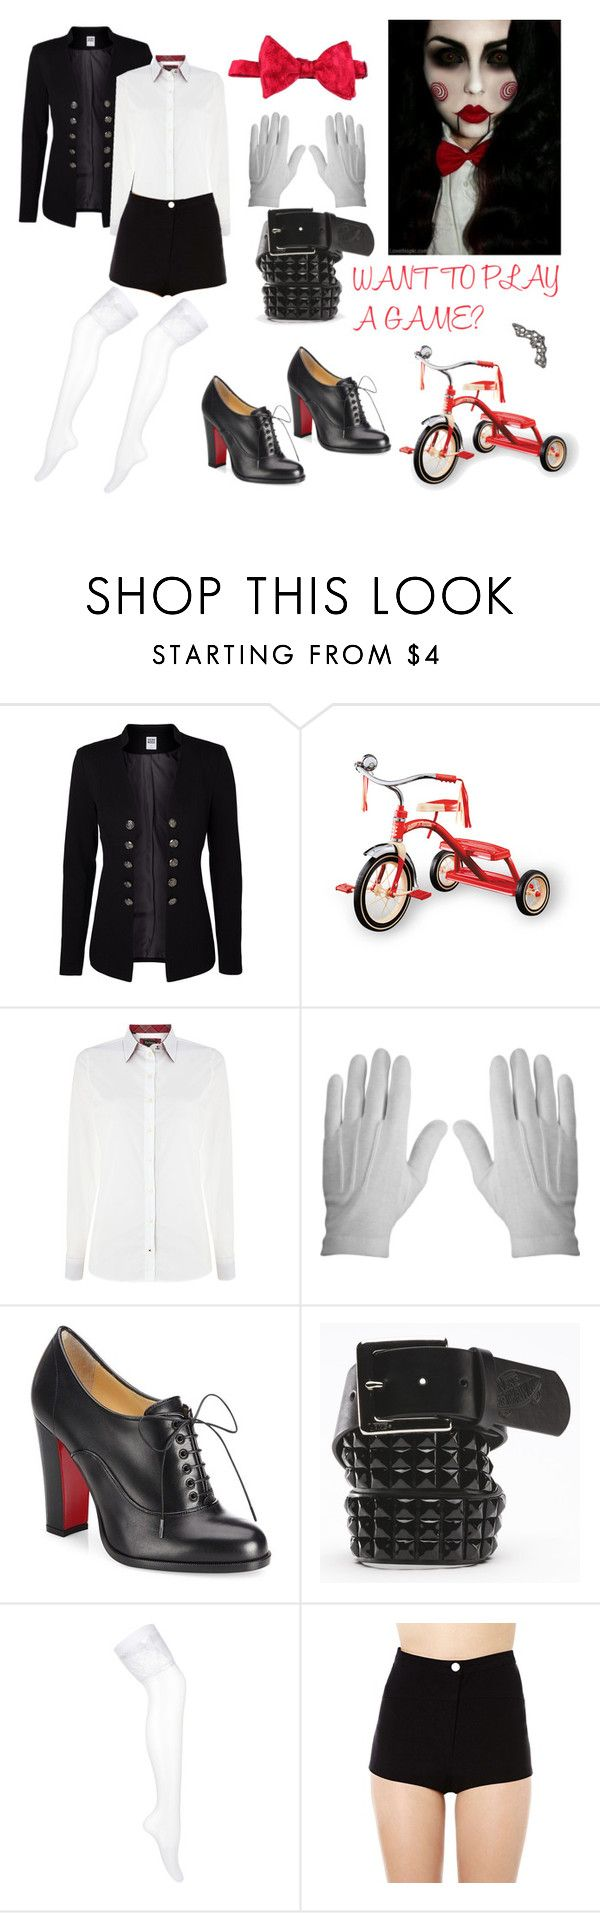 """""""Jigsaw Costume"""" by male-sarmiento ❤ liked on Polyvore featuring Vero Moda, Barbour, Rothco, Christian Louboutin and Vans"""